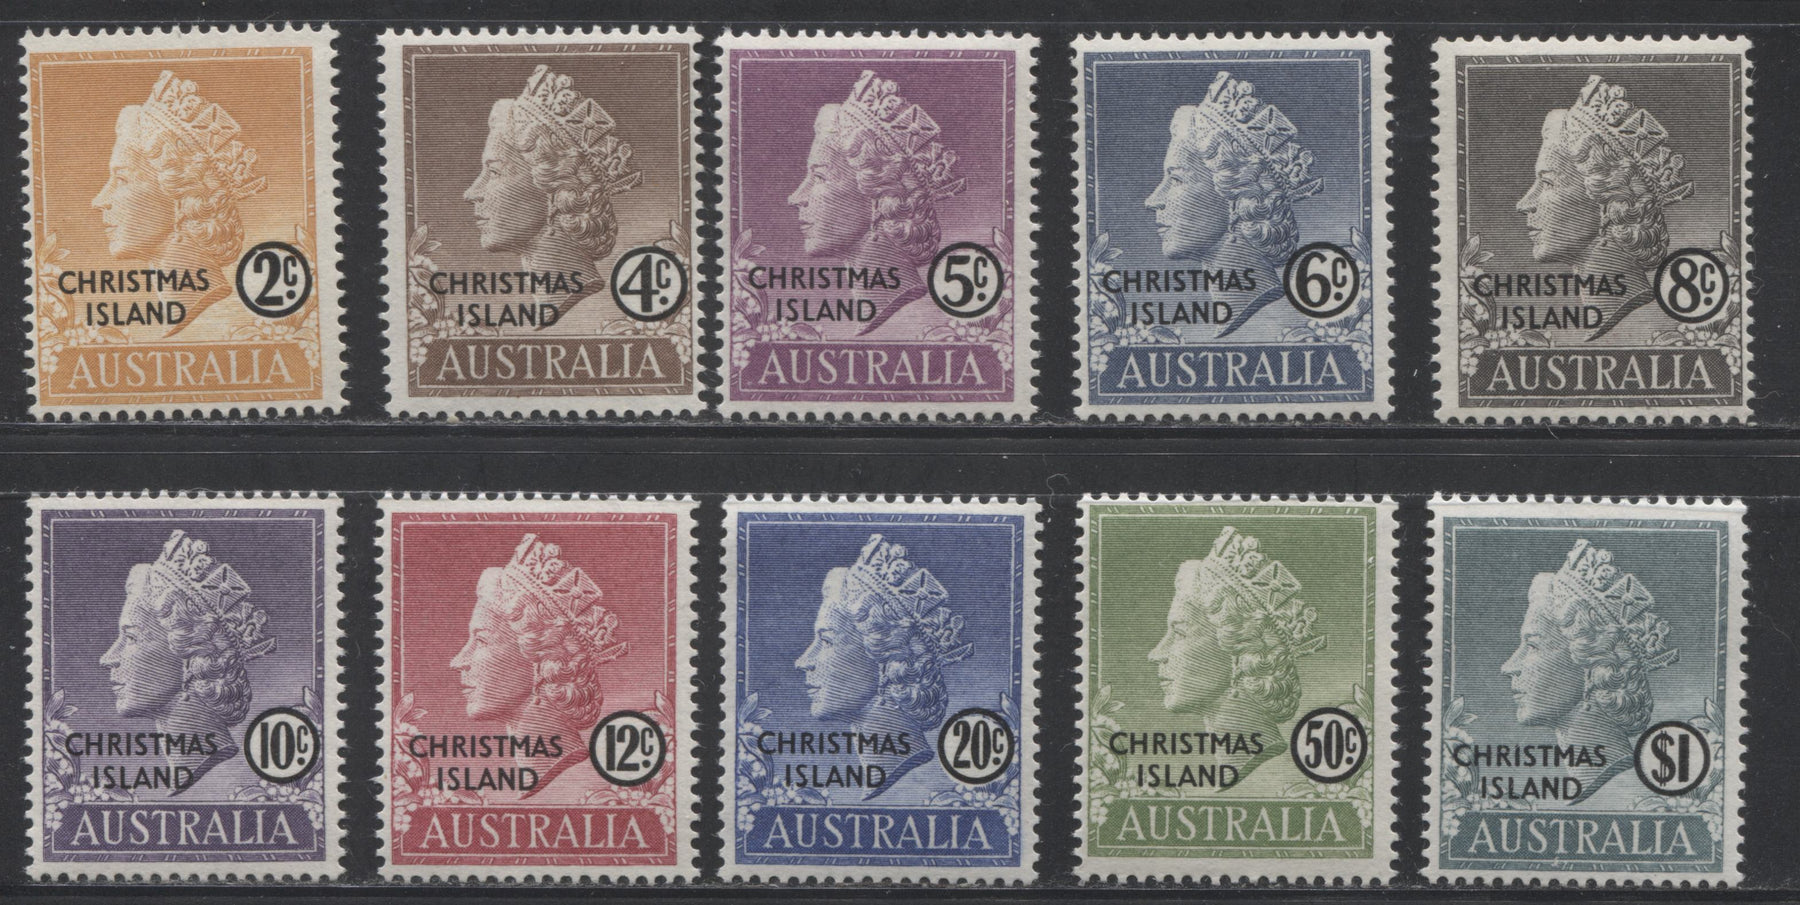 Christmas Island #1-10 2c Yellow Orange - $1 Forest Green Queen Elizabeth II, 1958 Definitive Issue, A Complete F-VF NH Set